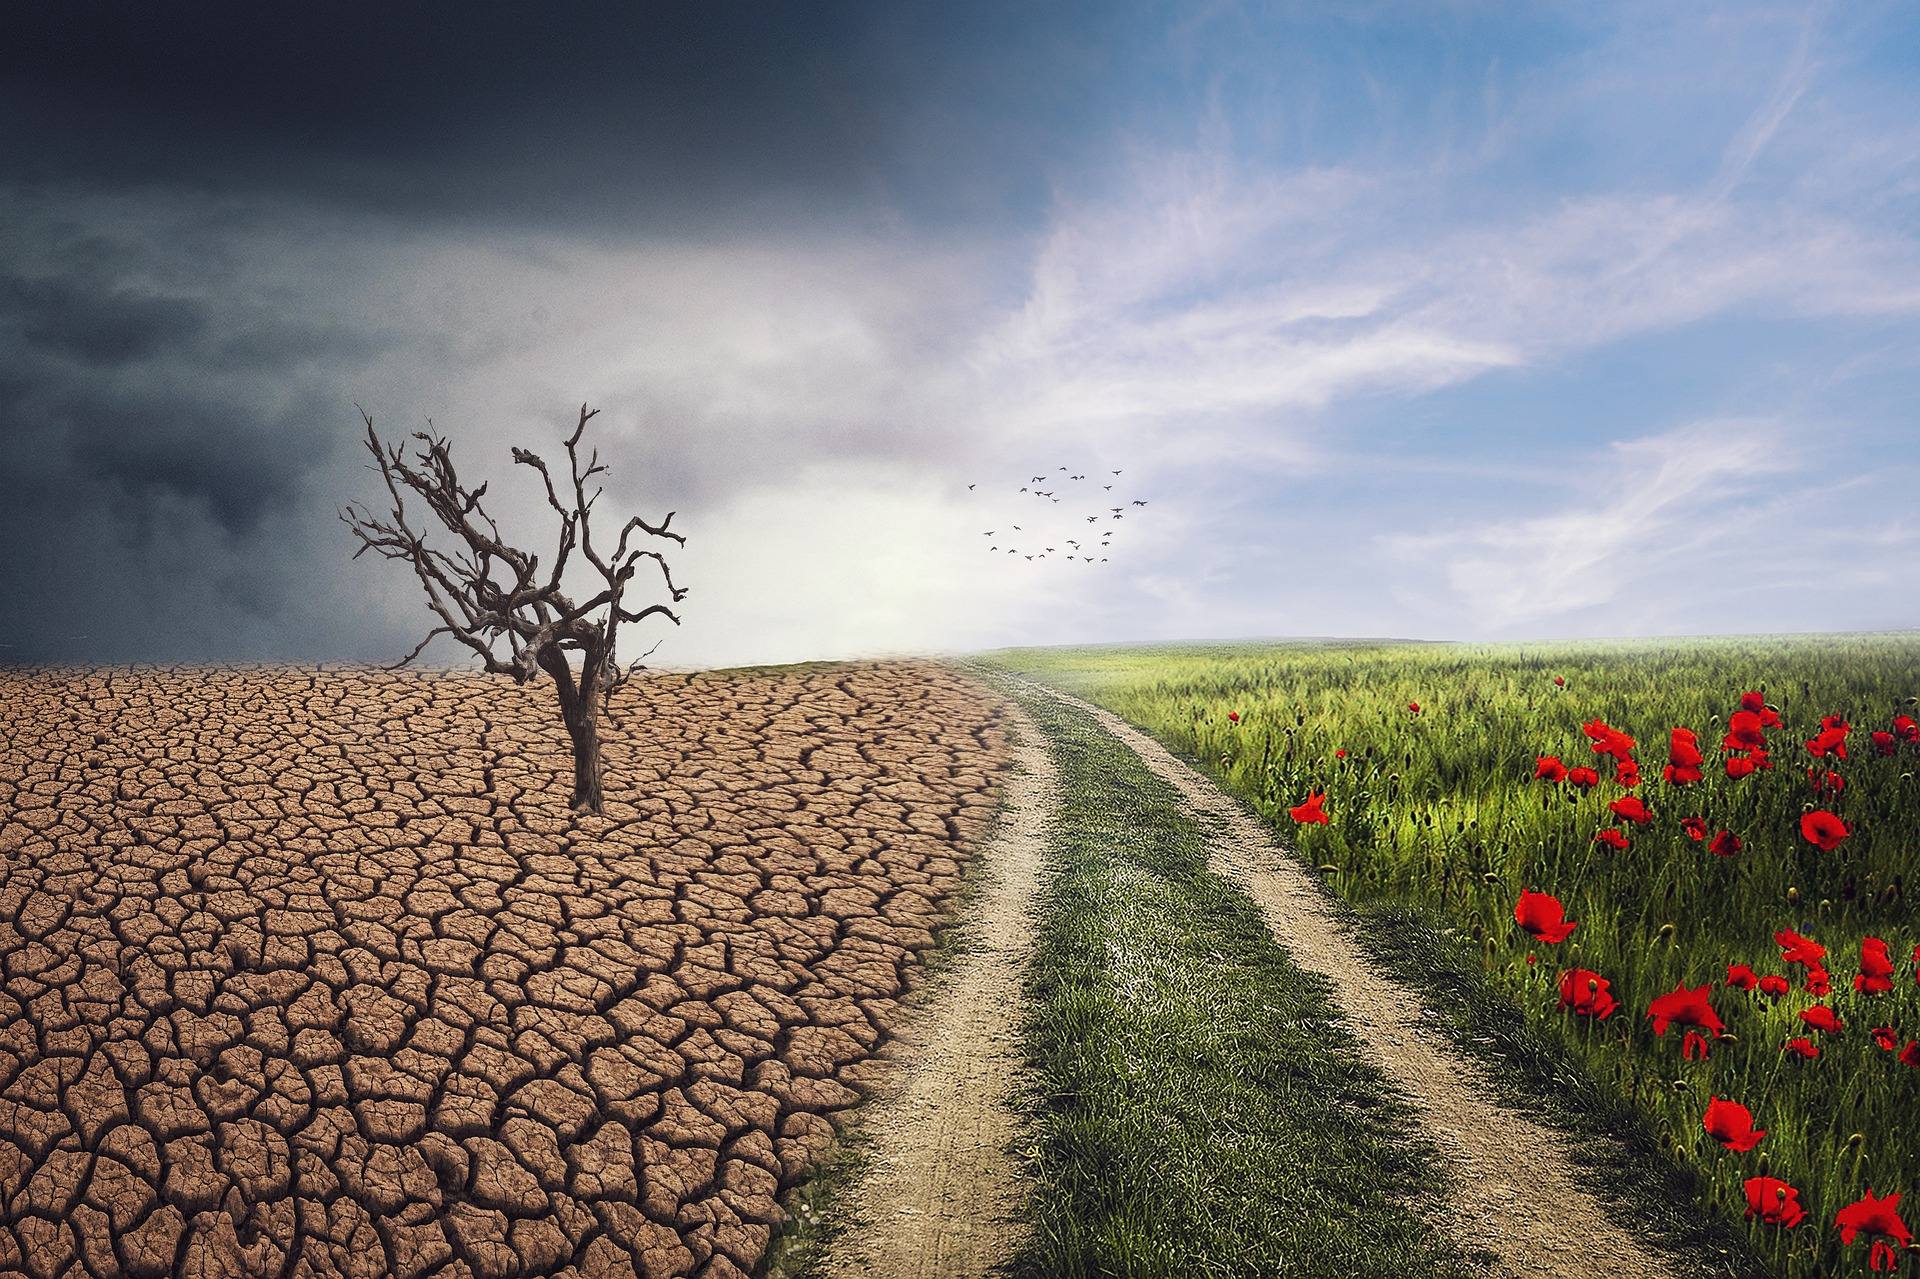 The connection between climate change, allergies, and mental health